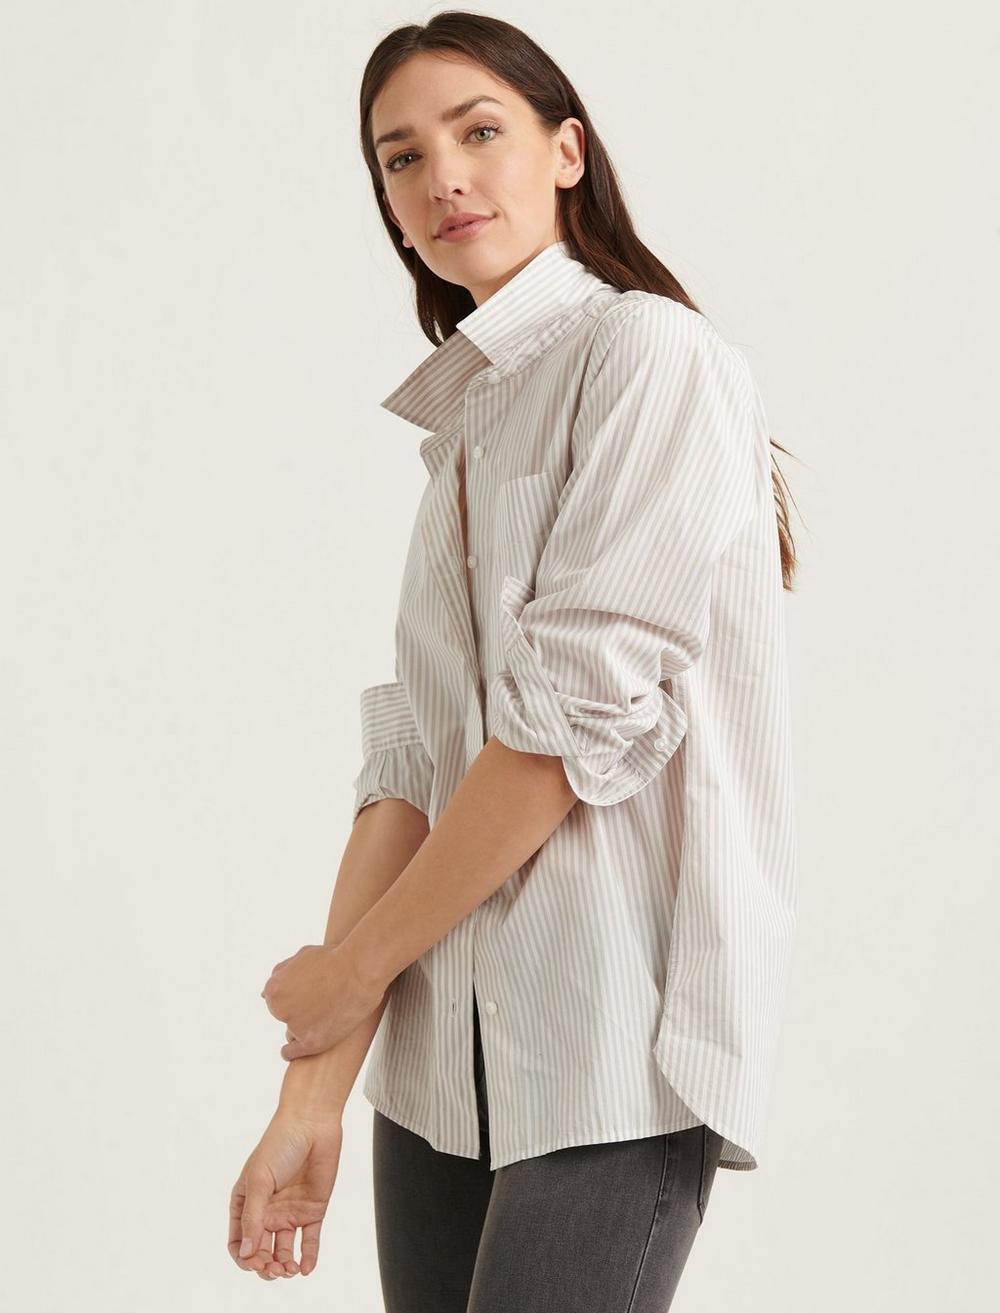 RELAXED SHIRT, image 3